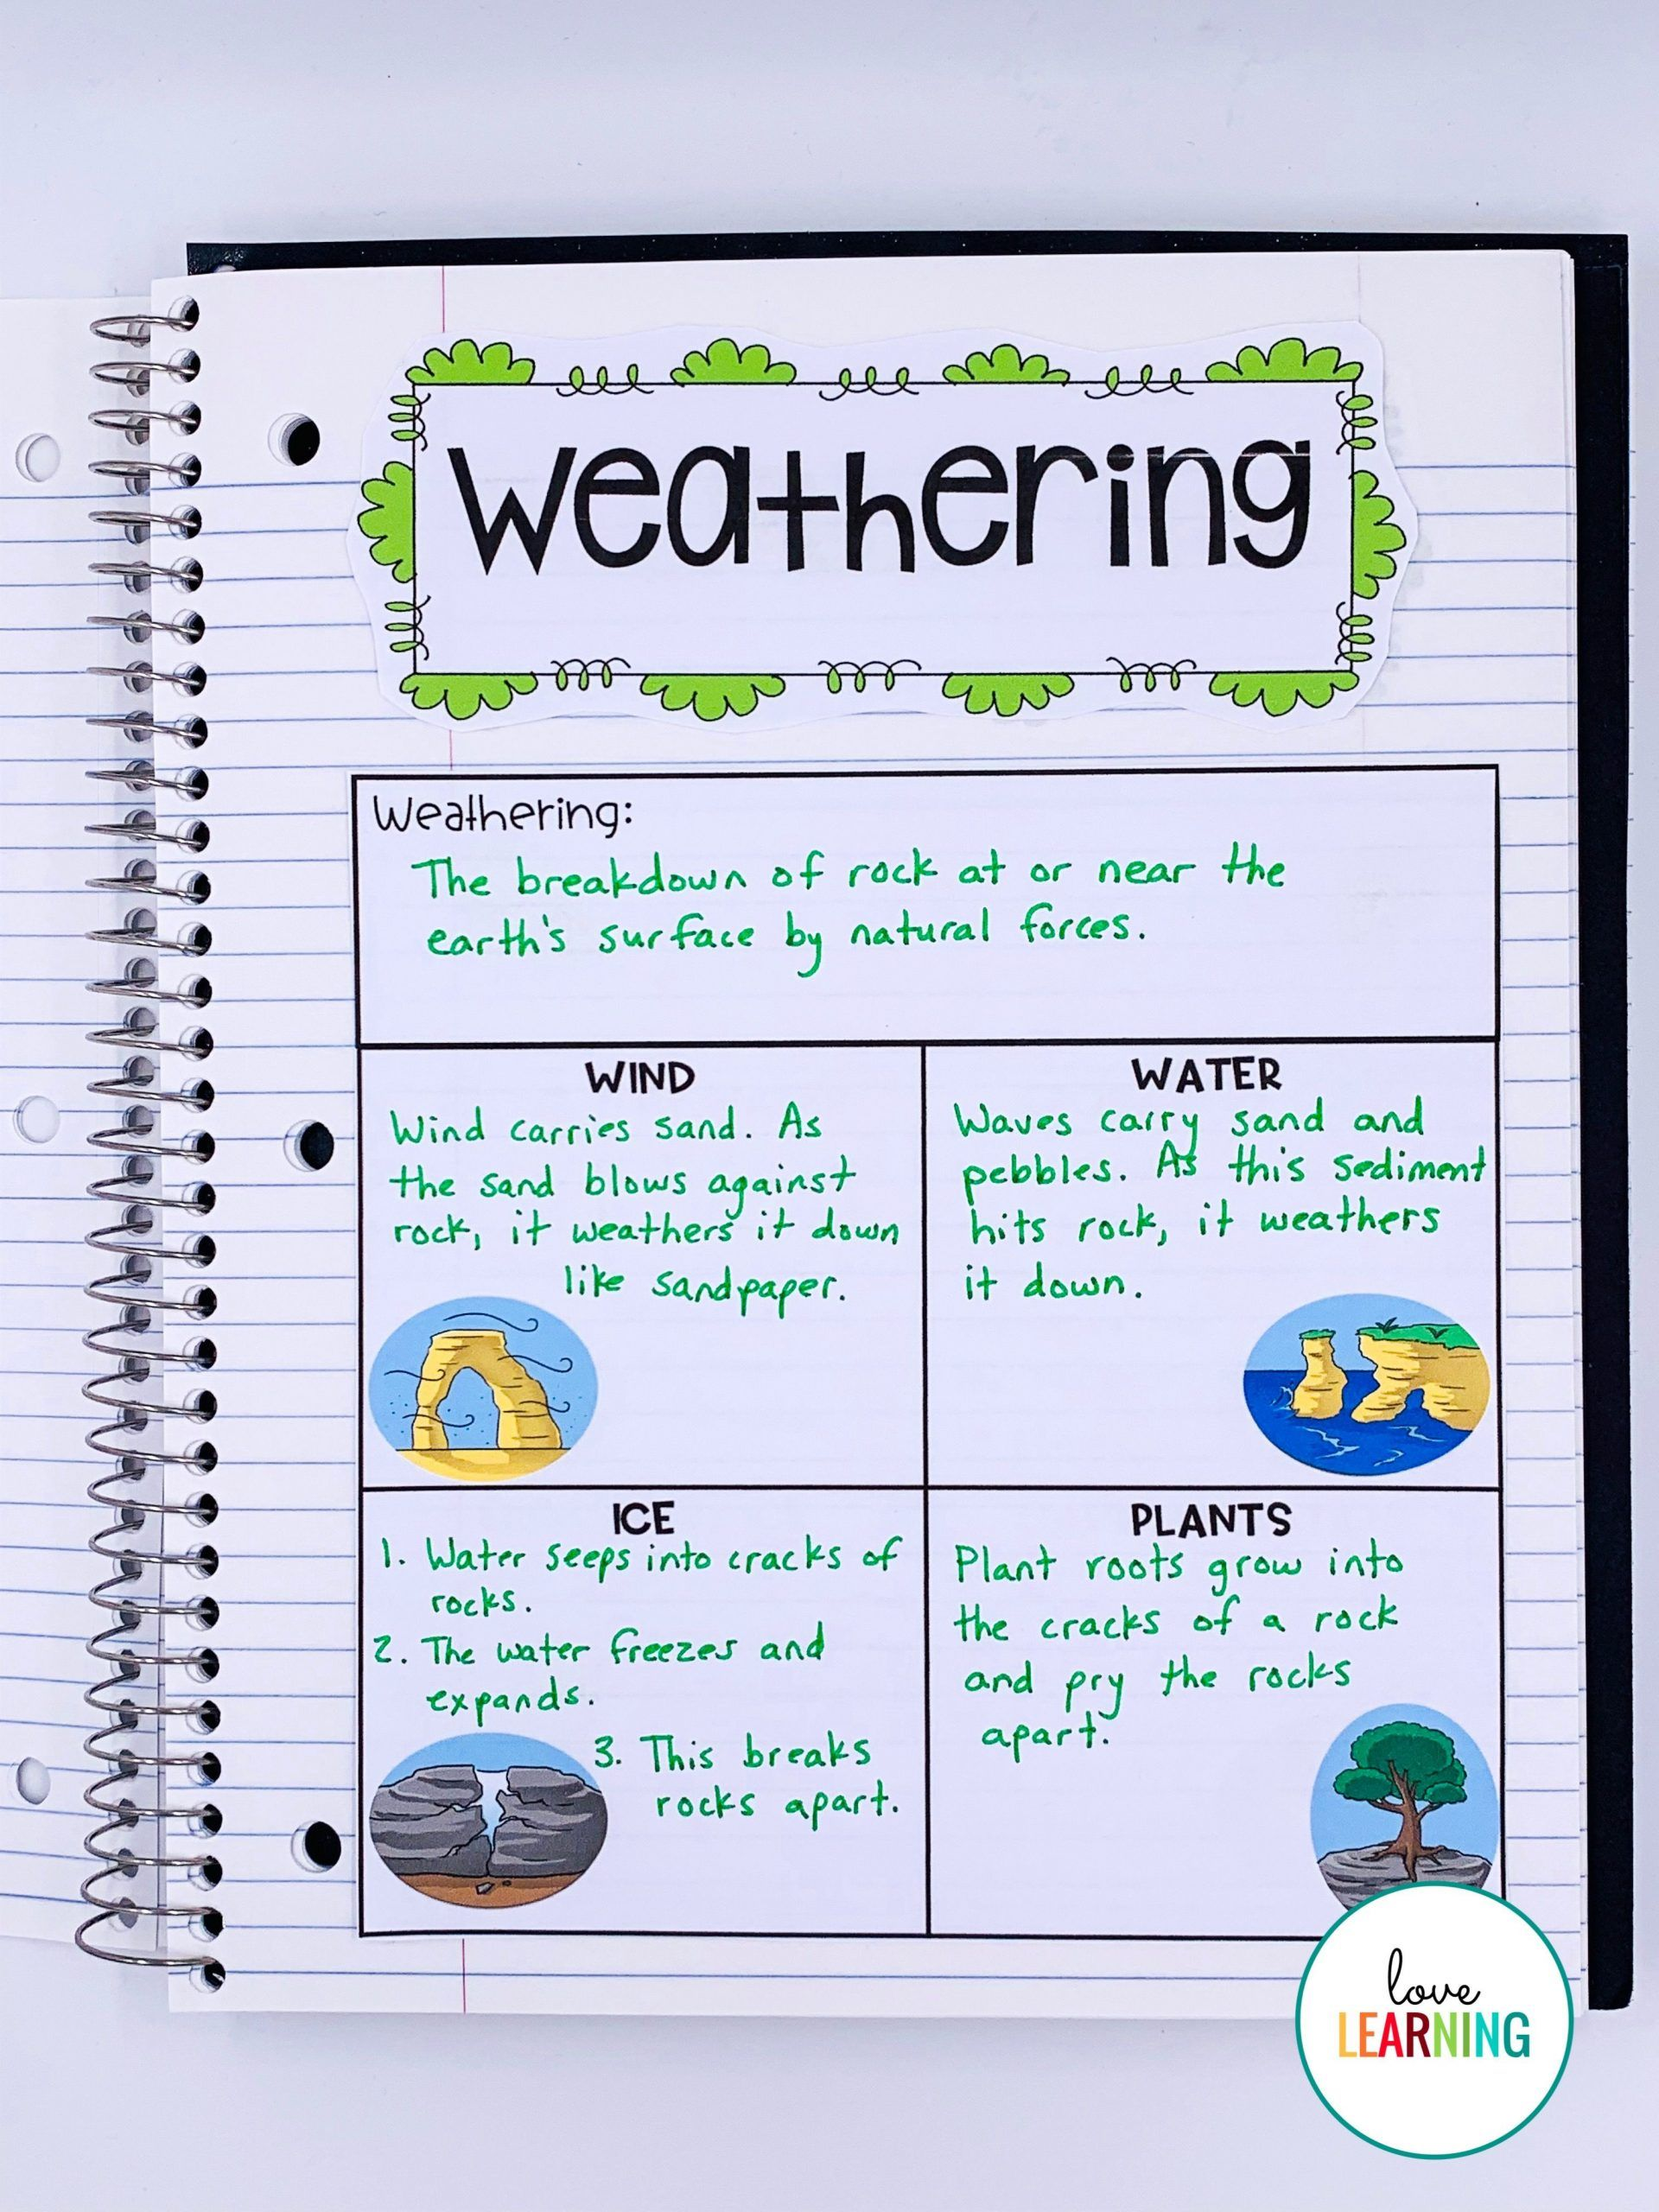 Weathering Erosion And Deposition Worksheet Weathering